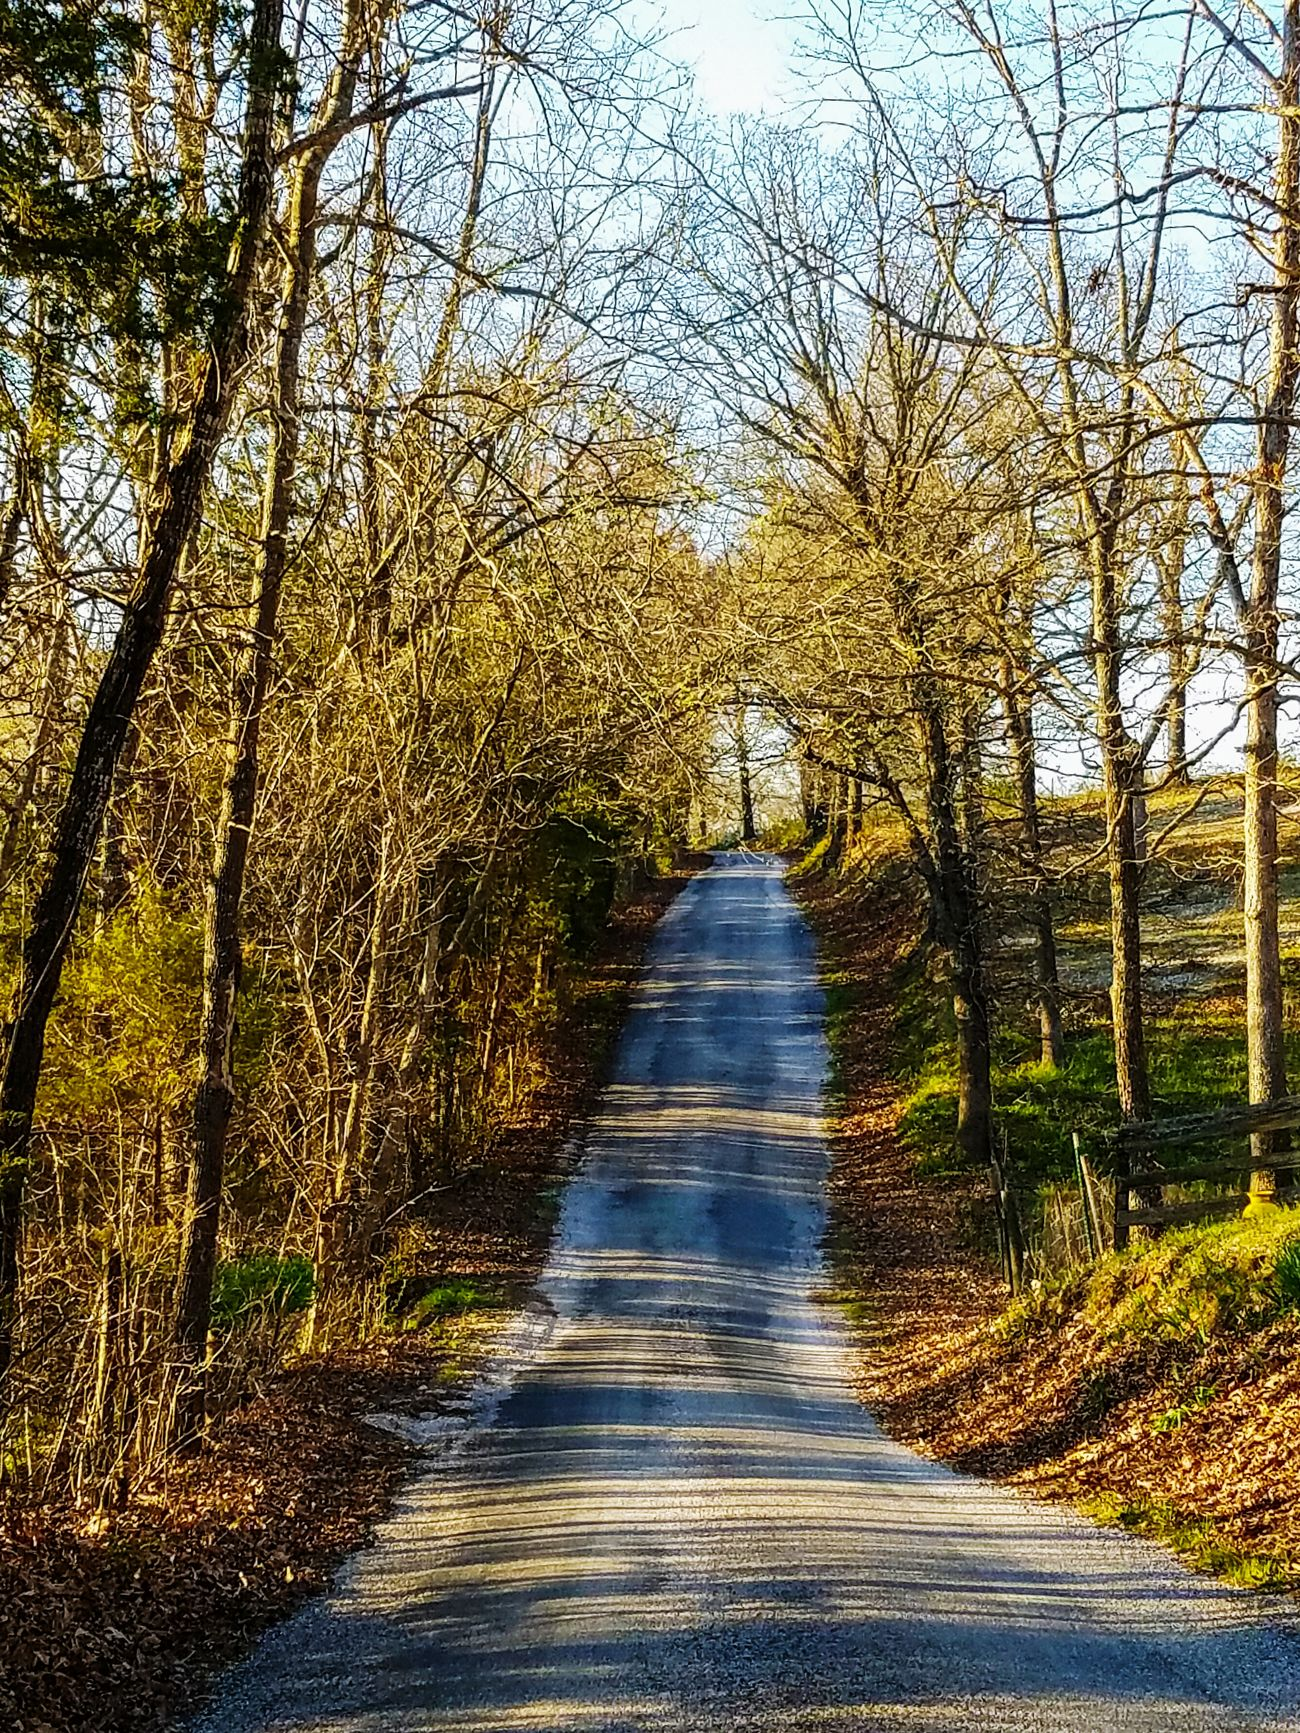 Tree lined road. Tree The Way Forward Nature Outdoors No People Beauty In Nature Sky Empty Road Fall Season Warm Colors Fall Collection Tree Roads Naturelover Naturephotography Nature At Your Doorstep Dead Leaves Backroads Branches bare trees Roadside Backroad Photography Backroad Fall_collection Changing Seasons